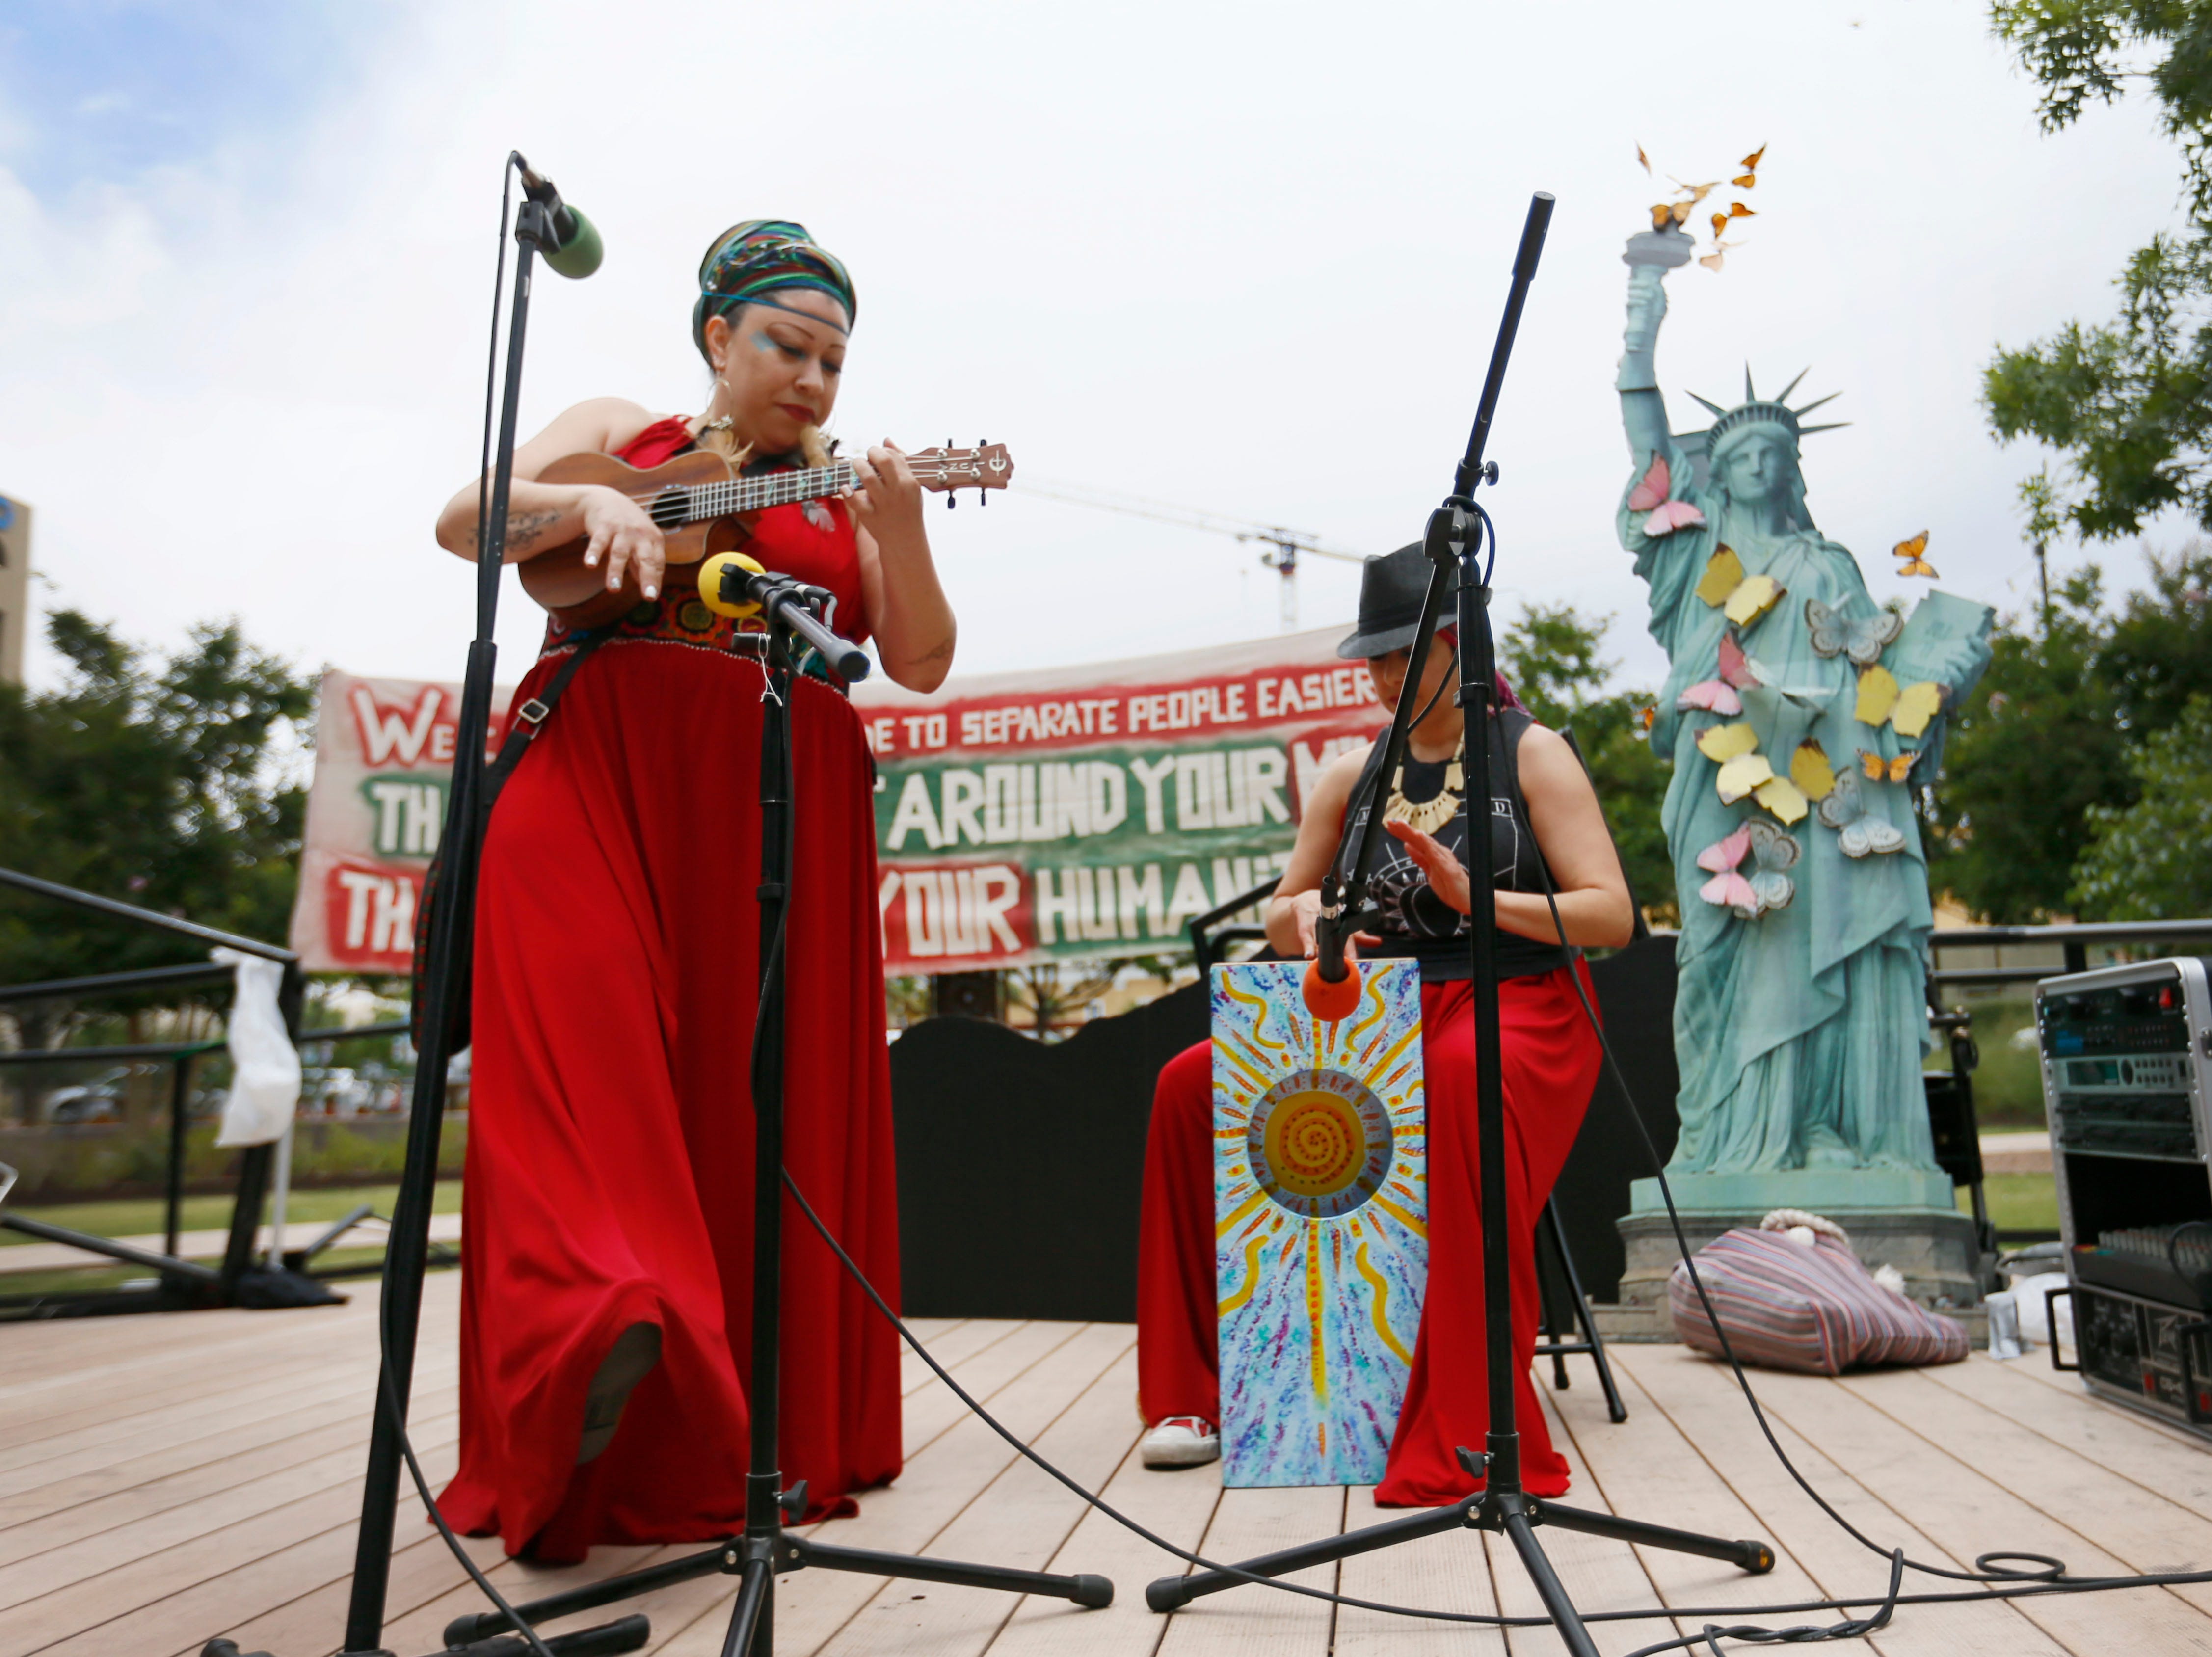 Shaka Took performs during the Coalition to End Child Detention - El Paso rally Sunday, May 12, to end family separation and child detention. Angelica Tinajero, left, and her sister Betsy Tinajero performed several songs during the rally.